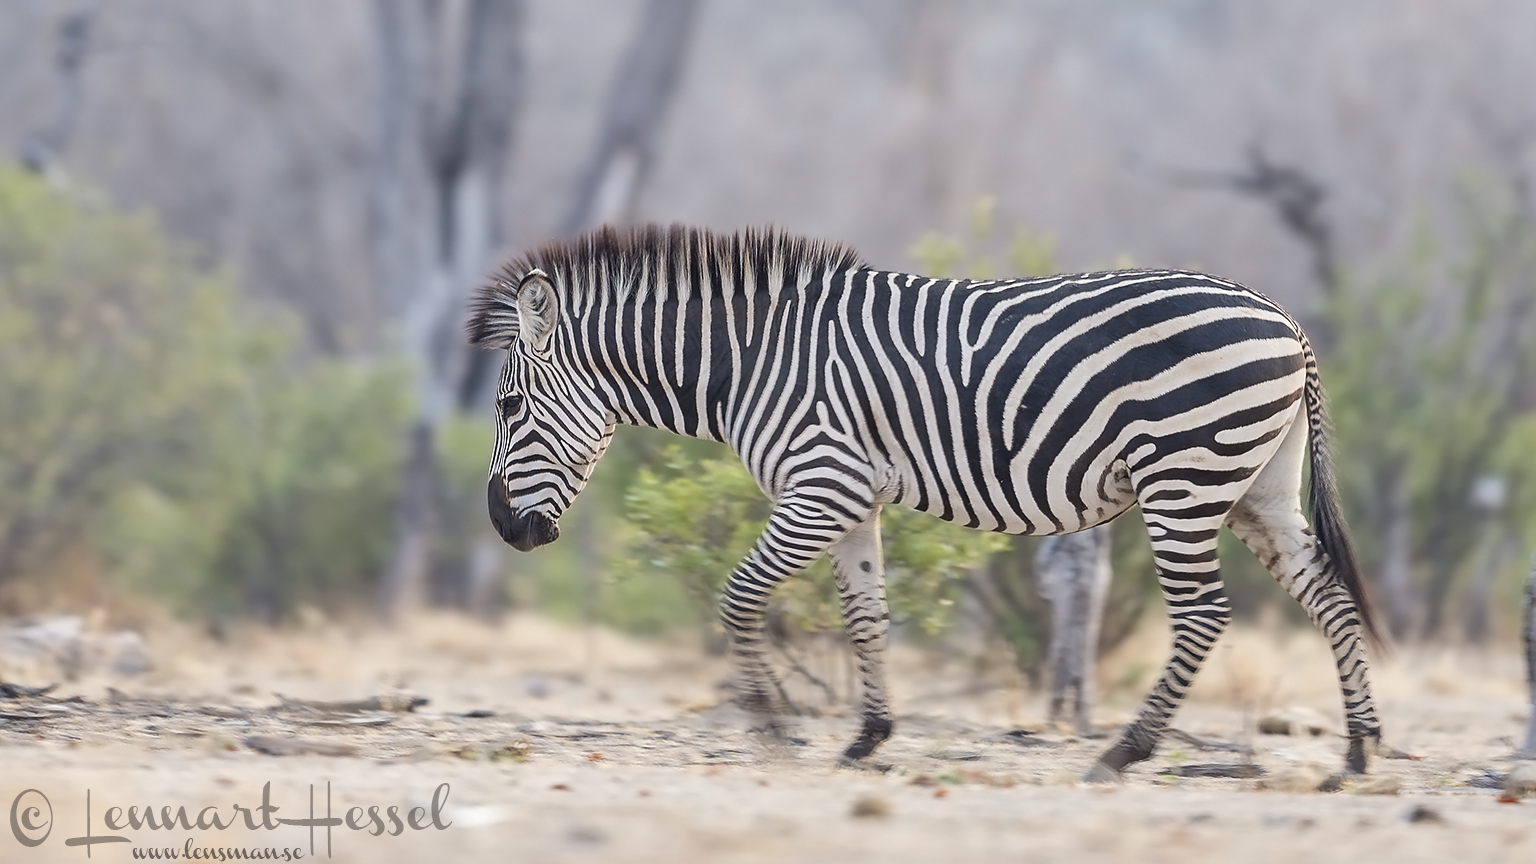 Zebra in Mana Pools 2015 Mana Pools National Park